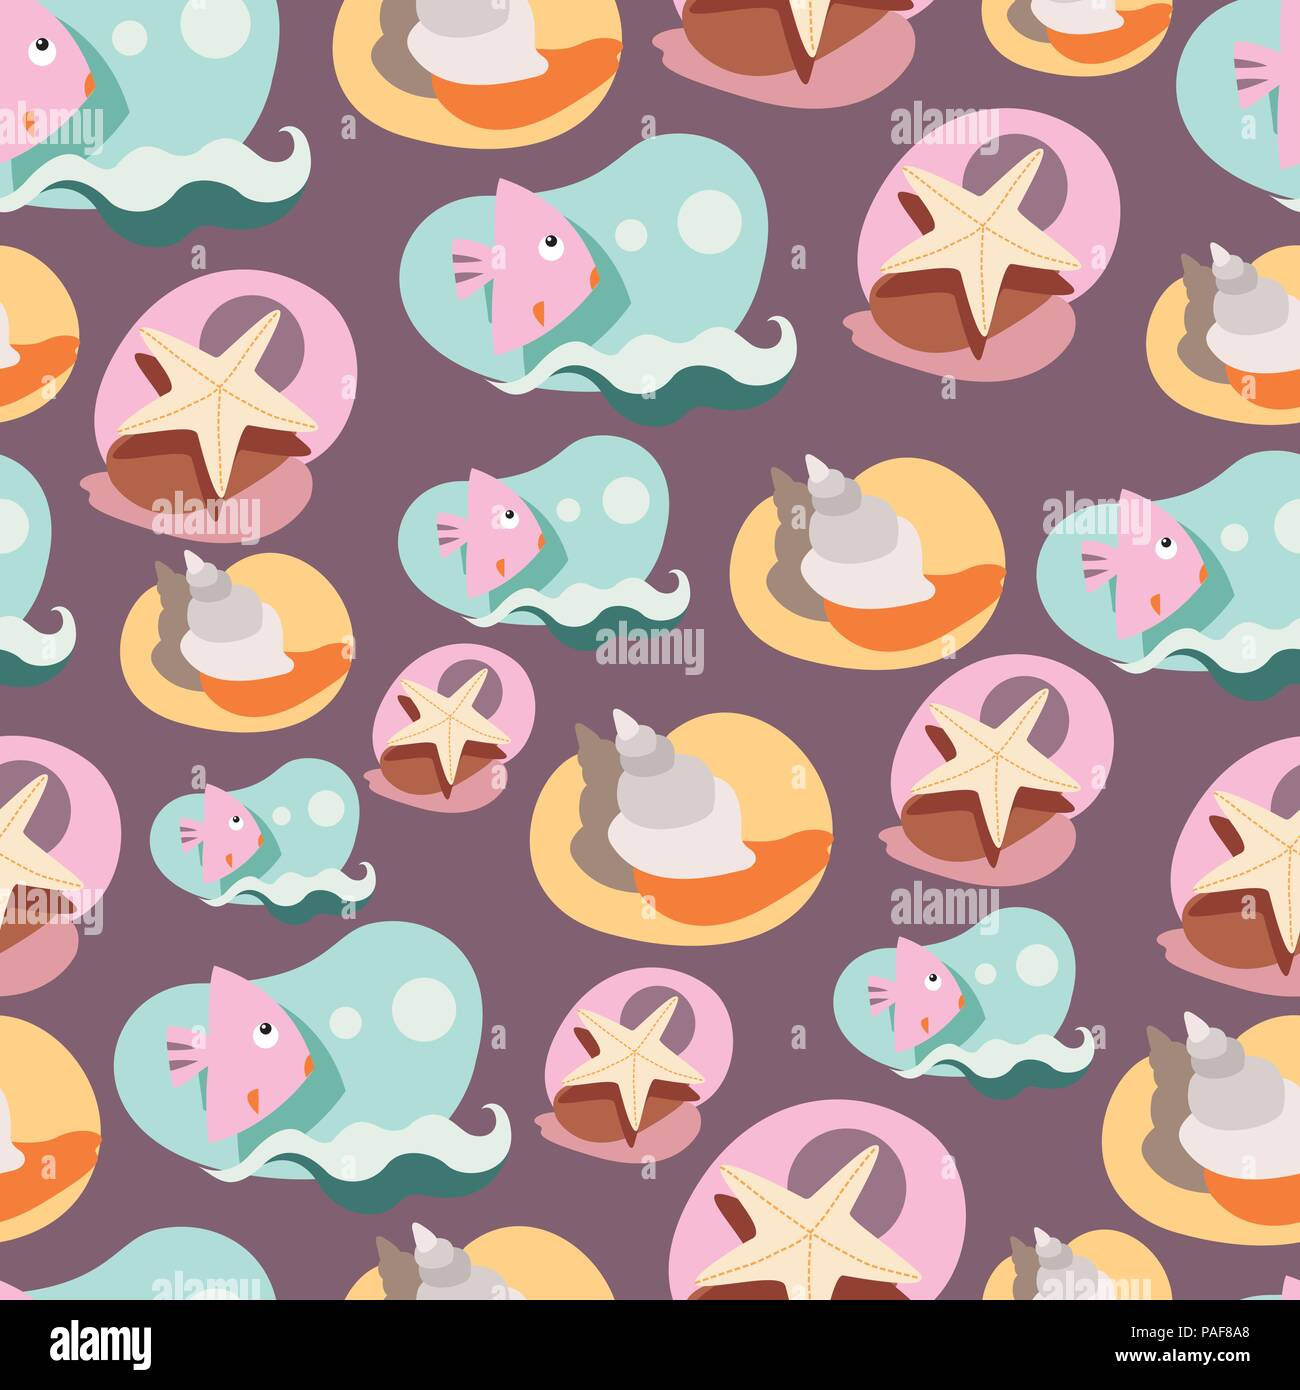 Seamless background pattern with lovely cartoon fishes - Stock Vector